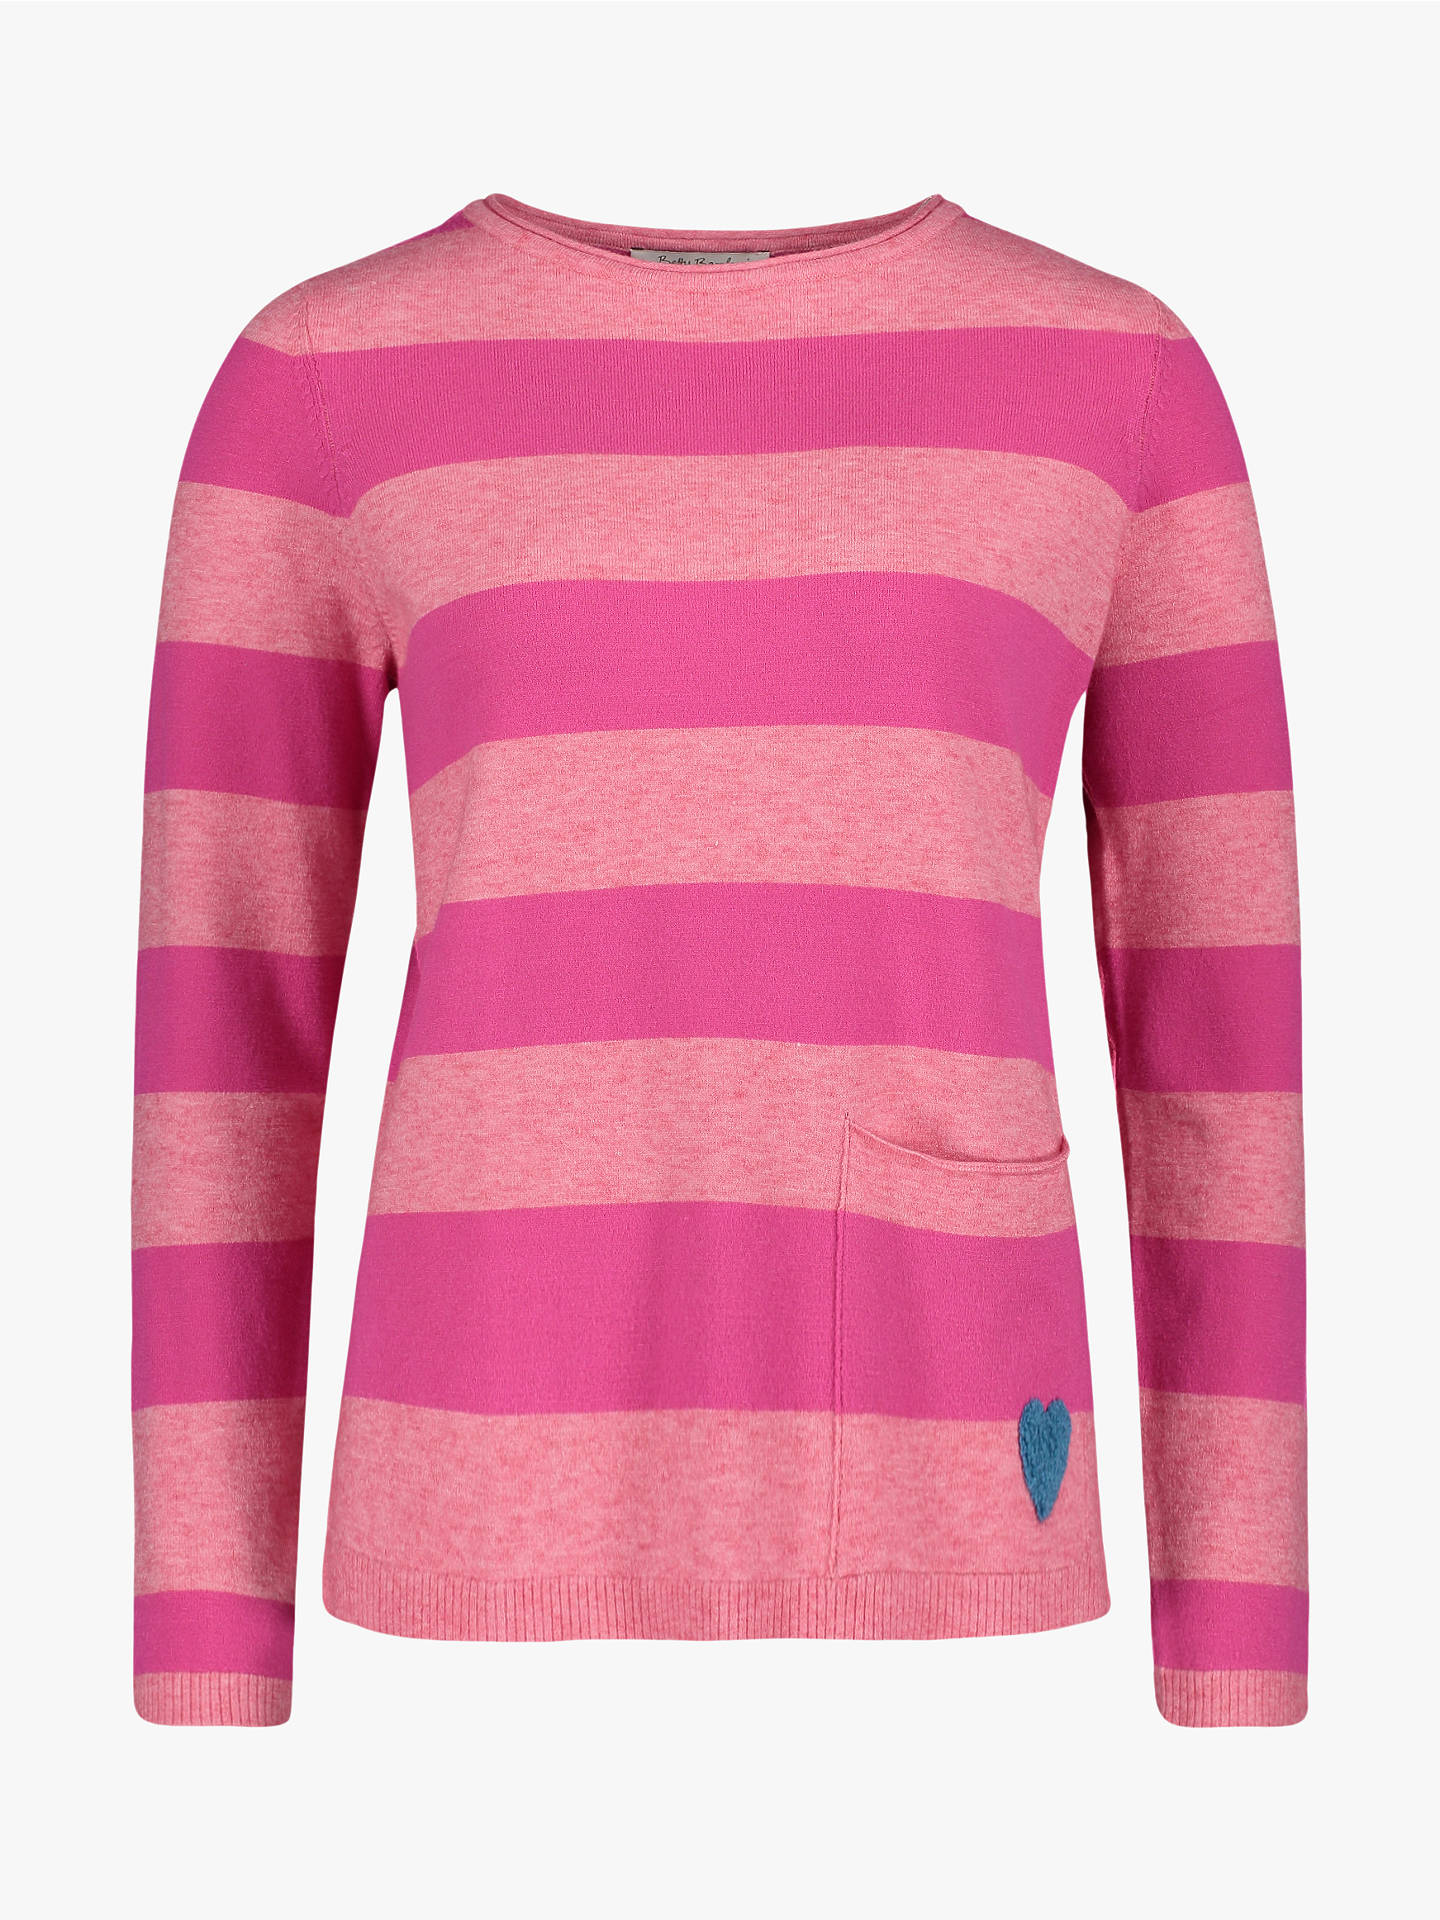 ... BuyBetty Barclay Stripe Jumper, Rose Pink, 22 Online at johnlewis.com 0107804a49